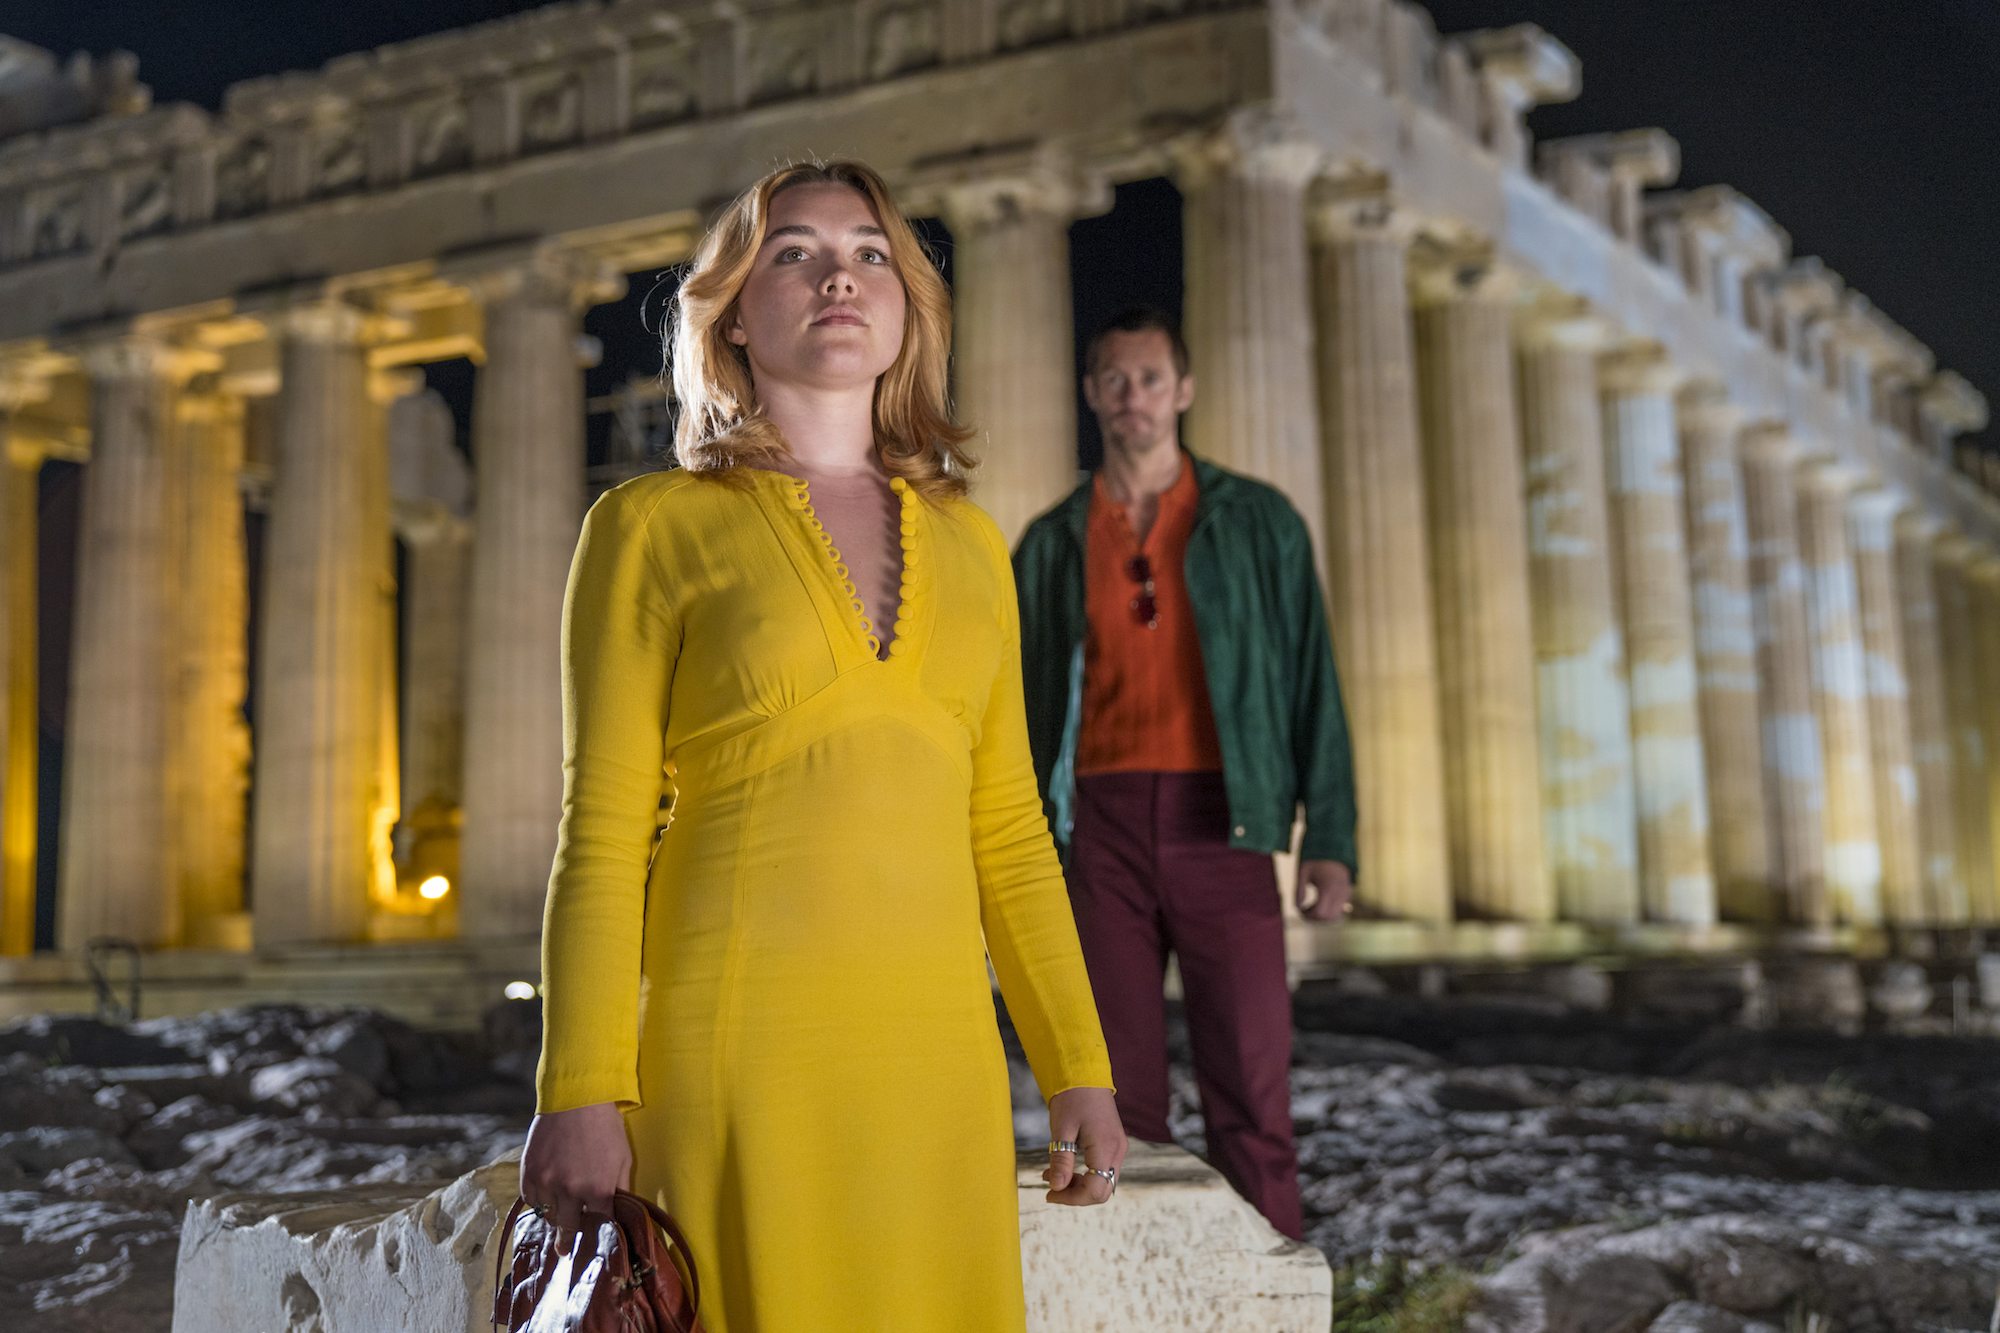 'The Little Drummer Girl' Trailer: Park Chan-wook's TV Debut Assembles Stellar Cast and Rainbow of Color for '70s Spy Thriller